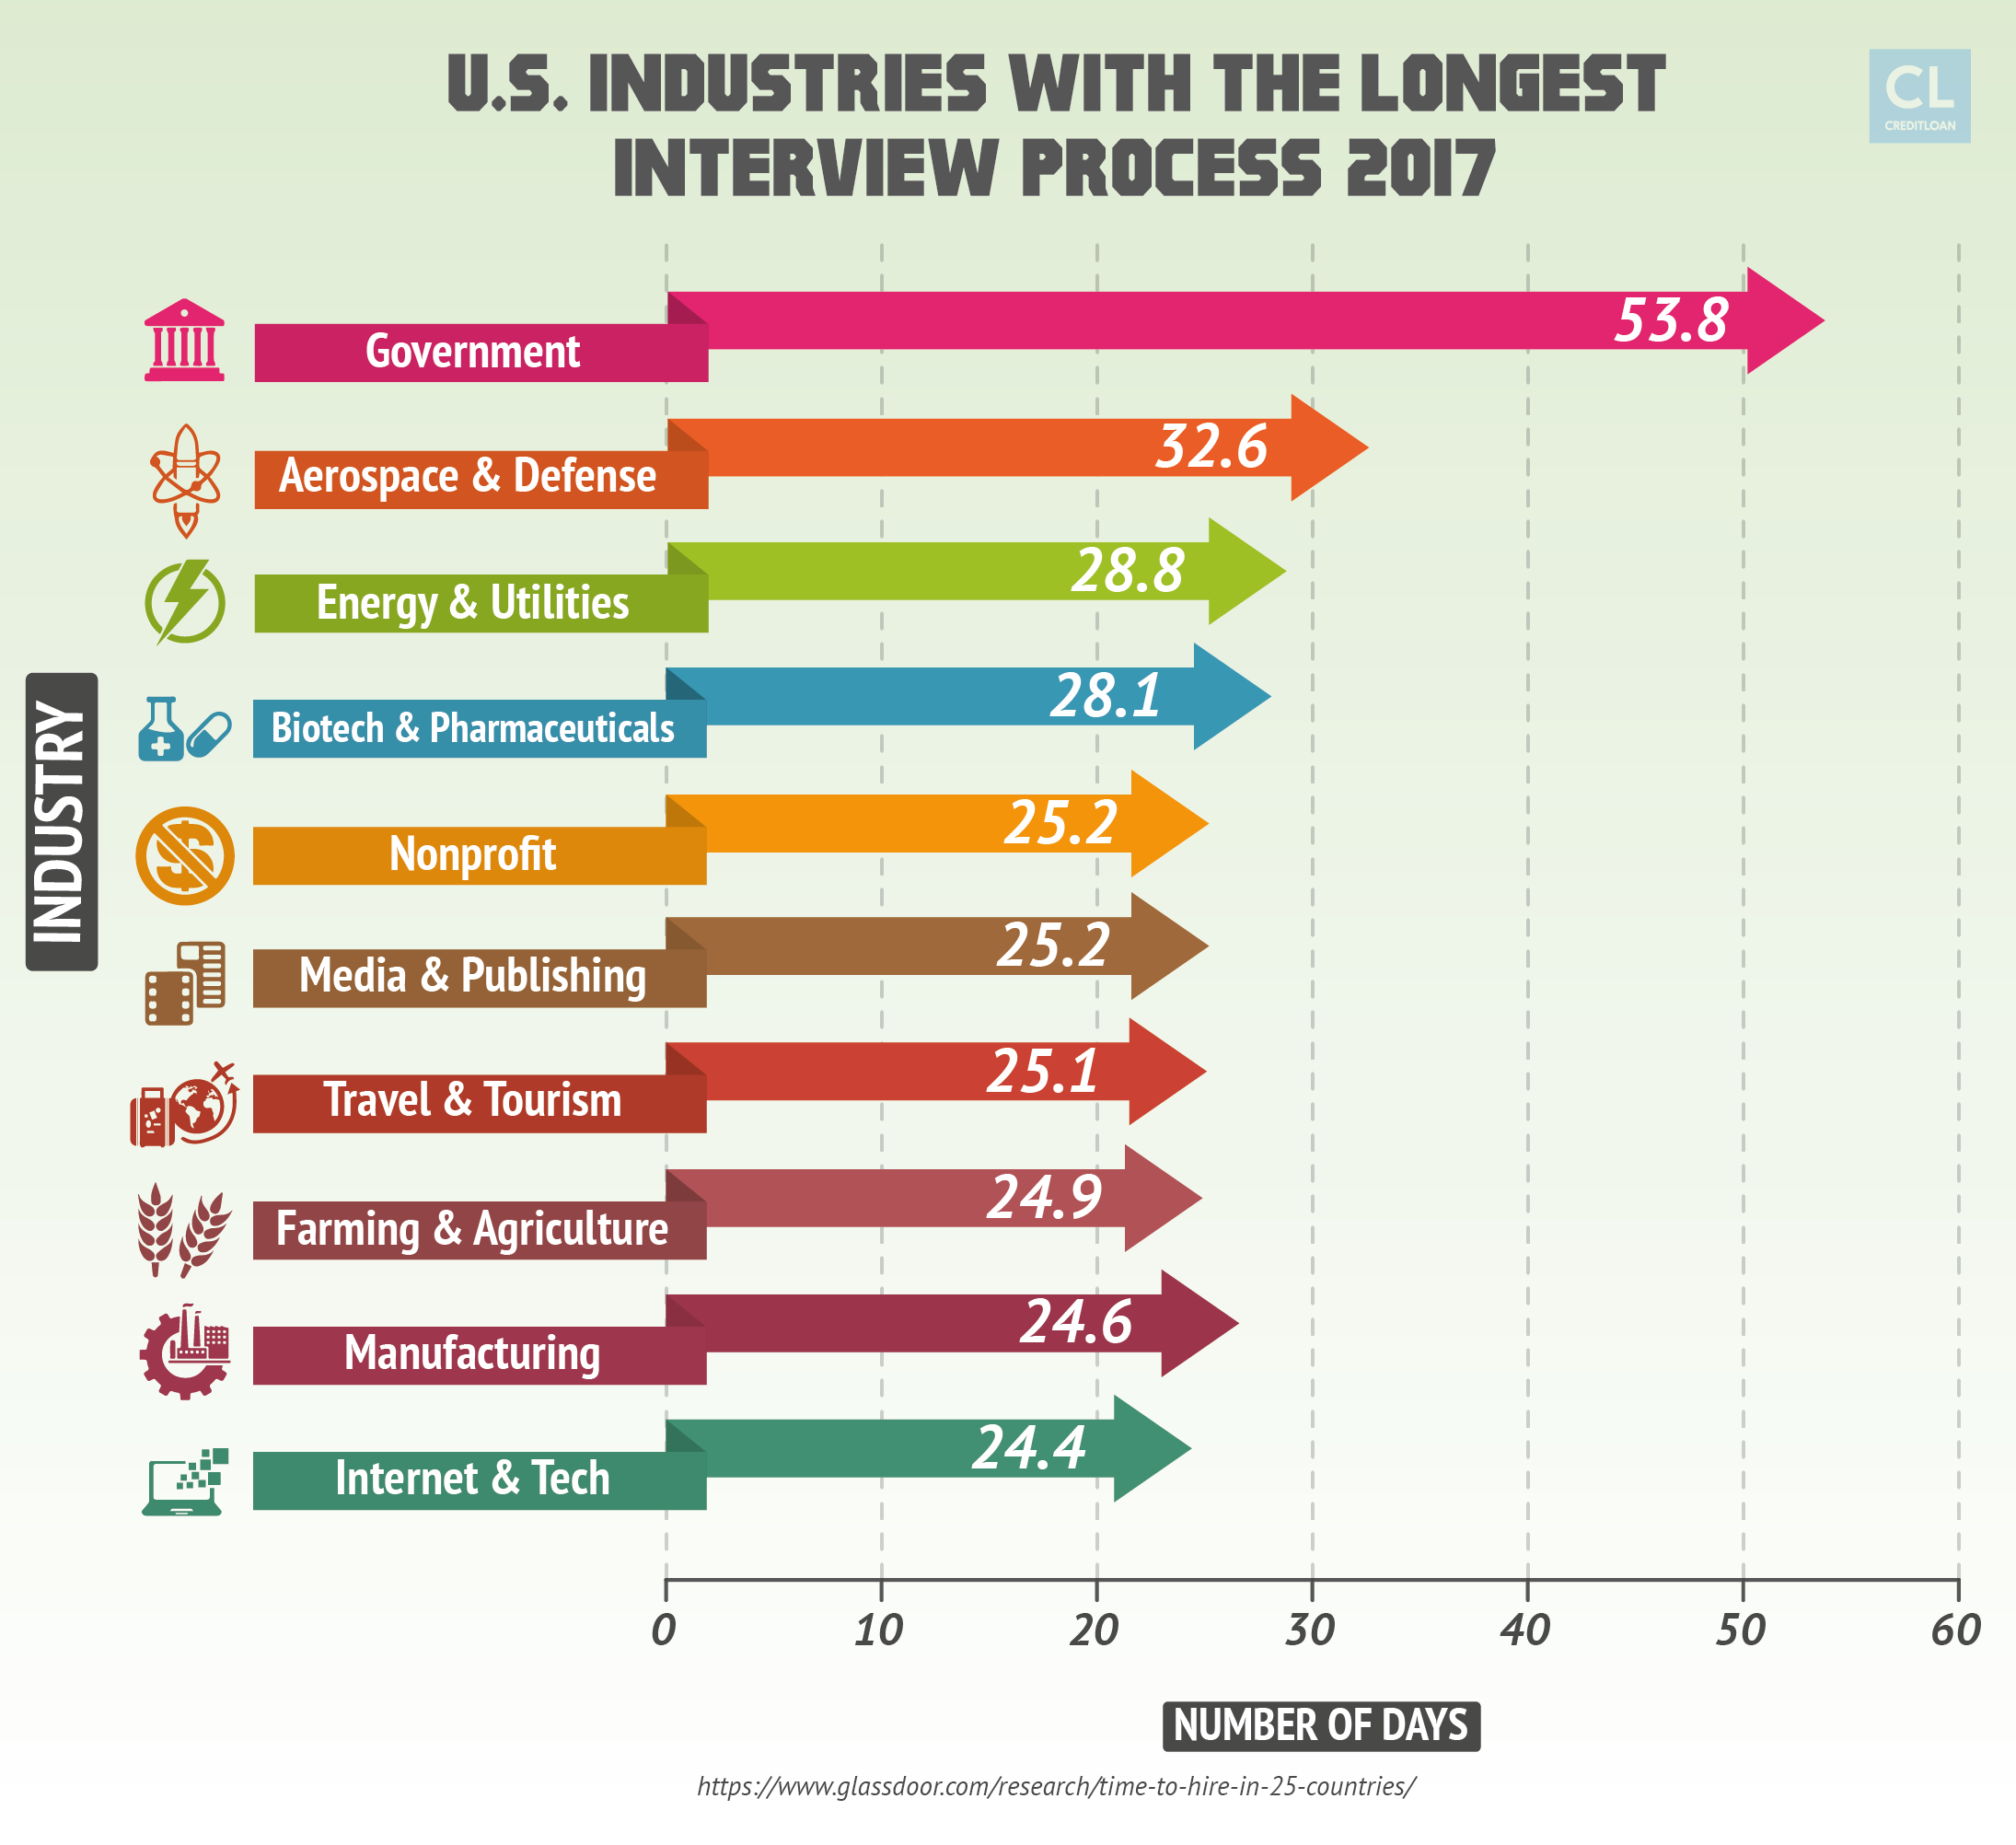 U.S. Industries With The Longest Interview Process (2017)